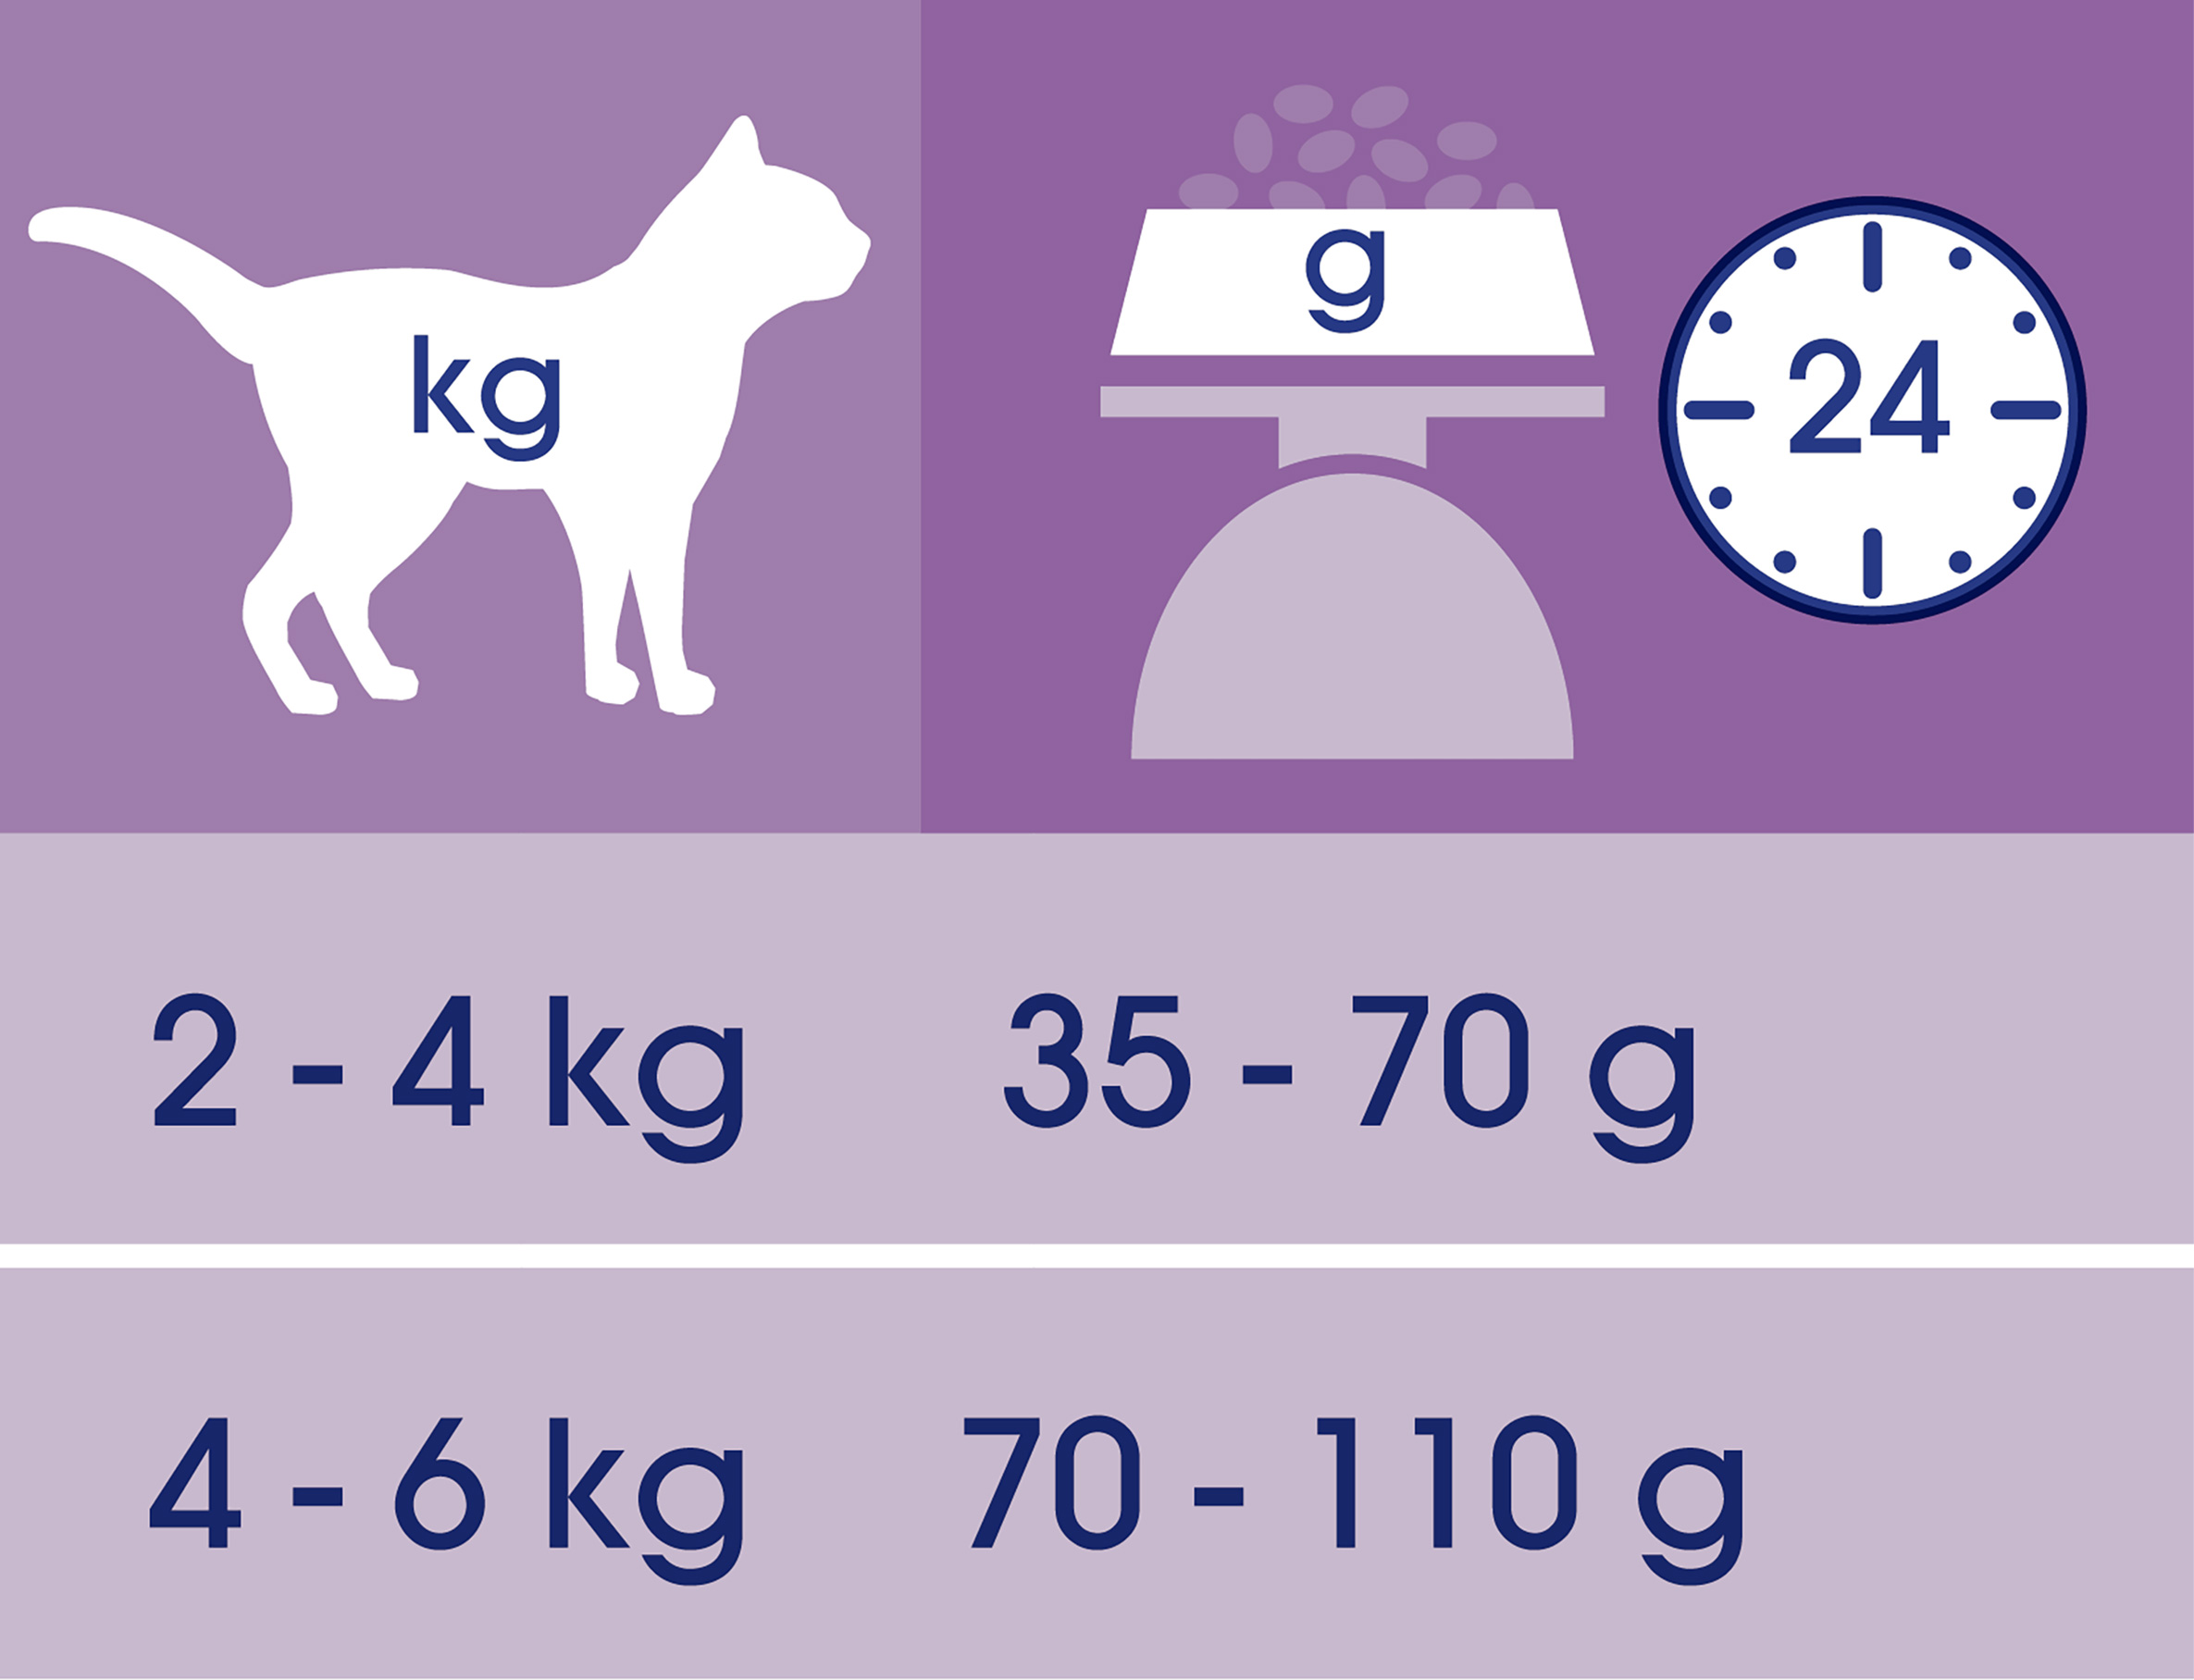 https://www.nestle.ro/sites/g/files/pydnoa501/files/Purina-CAT-CHOW-Hairball-Control-bogata-in-pui-tabel.jpg